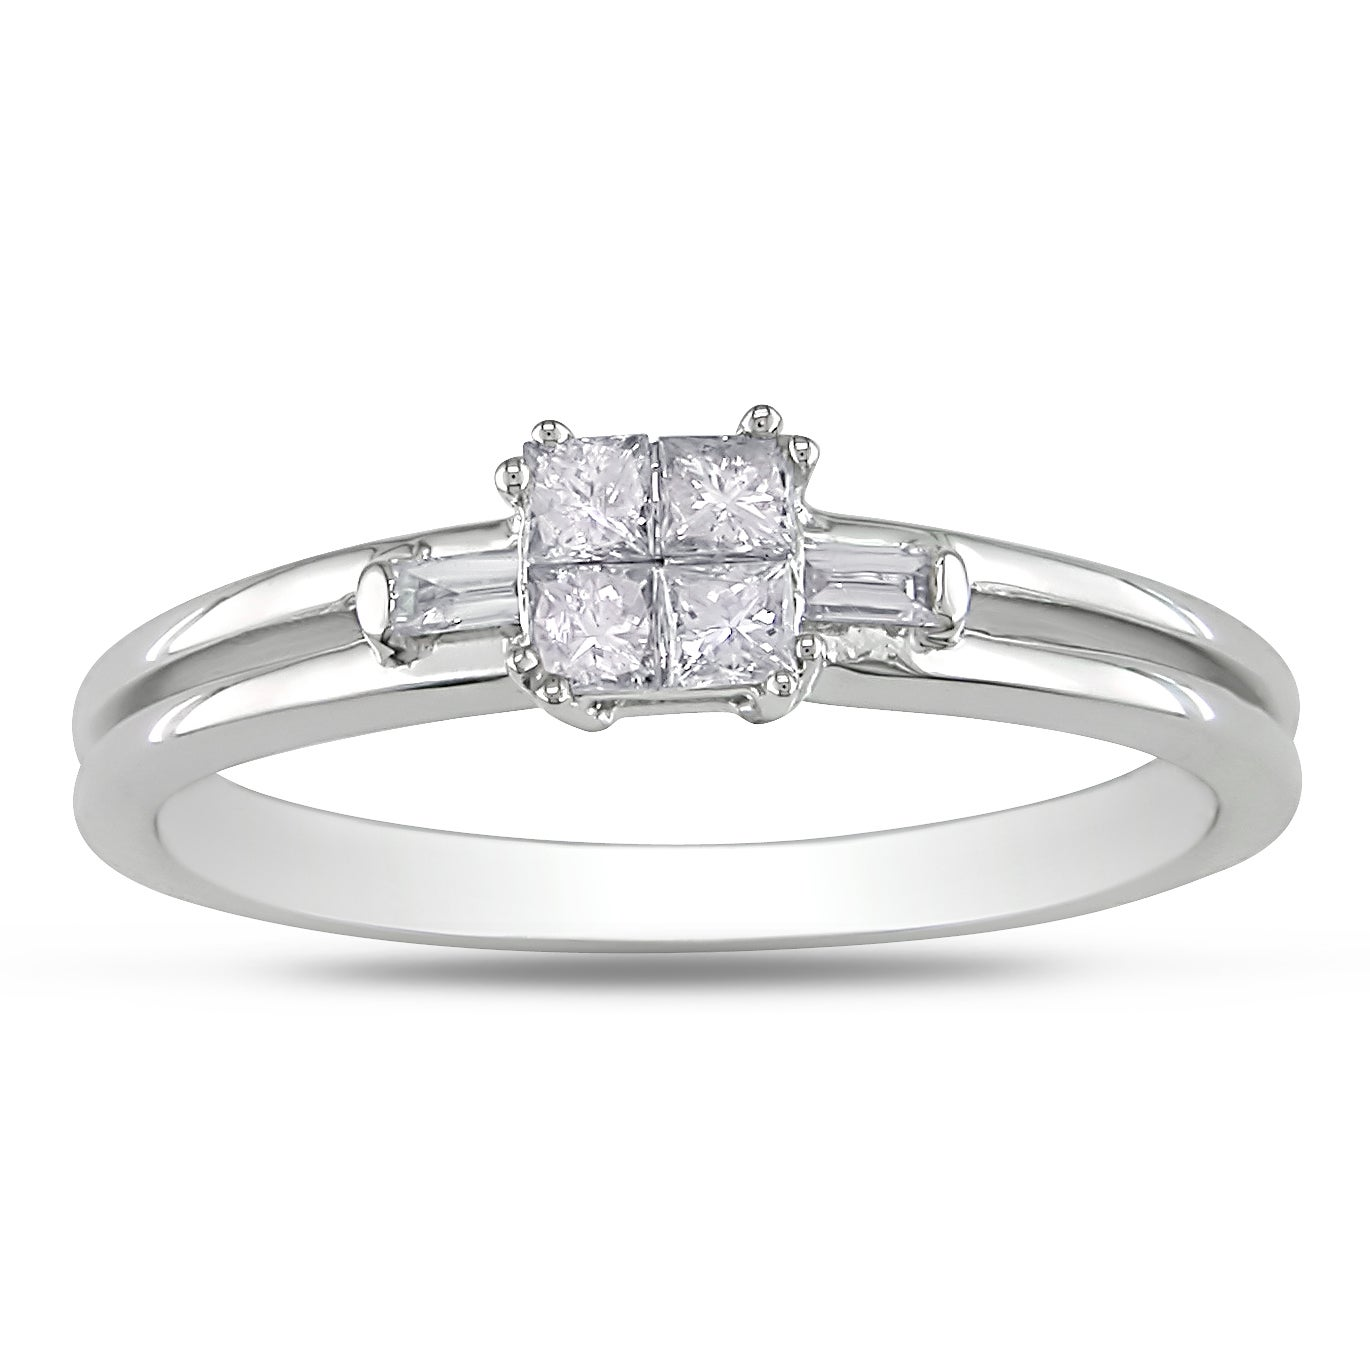 Miadora 14k White Gold 1/4ct TDW Diamond Ring (G-H, I1-2)